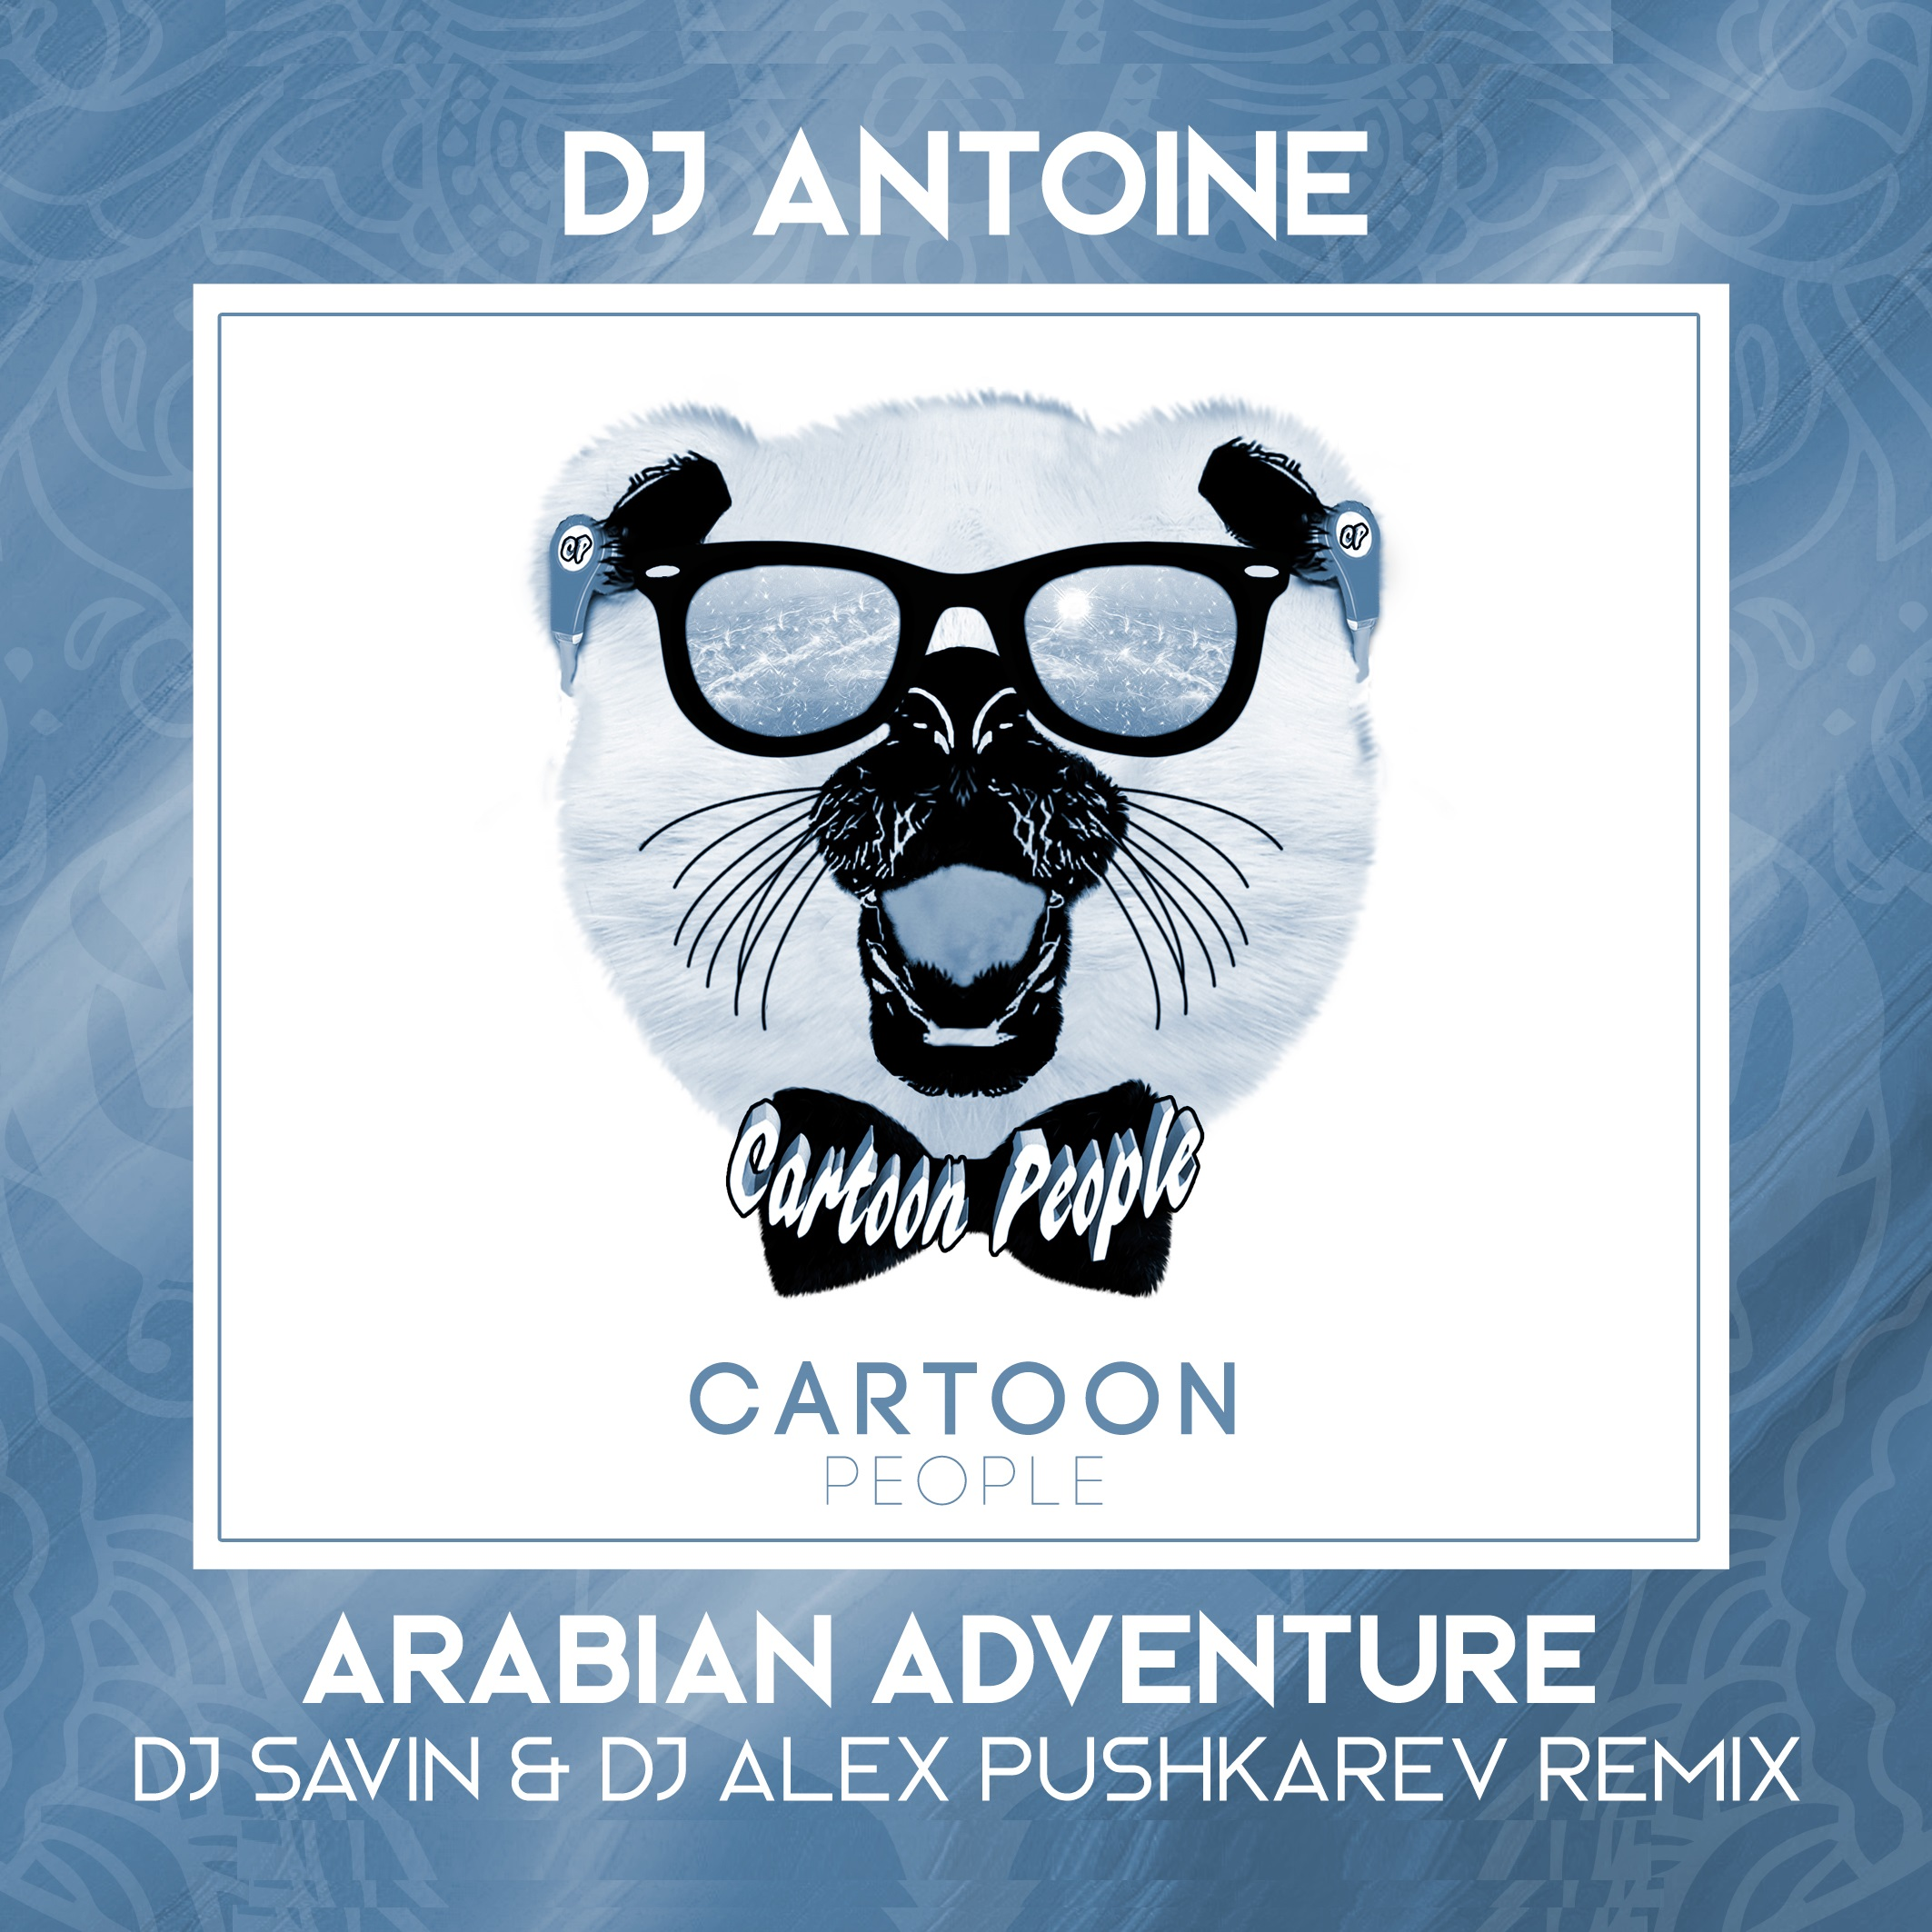 Dj Antoine - Arabian Adventure (DJ Savin & DJ Alex Pushkarev Remix)